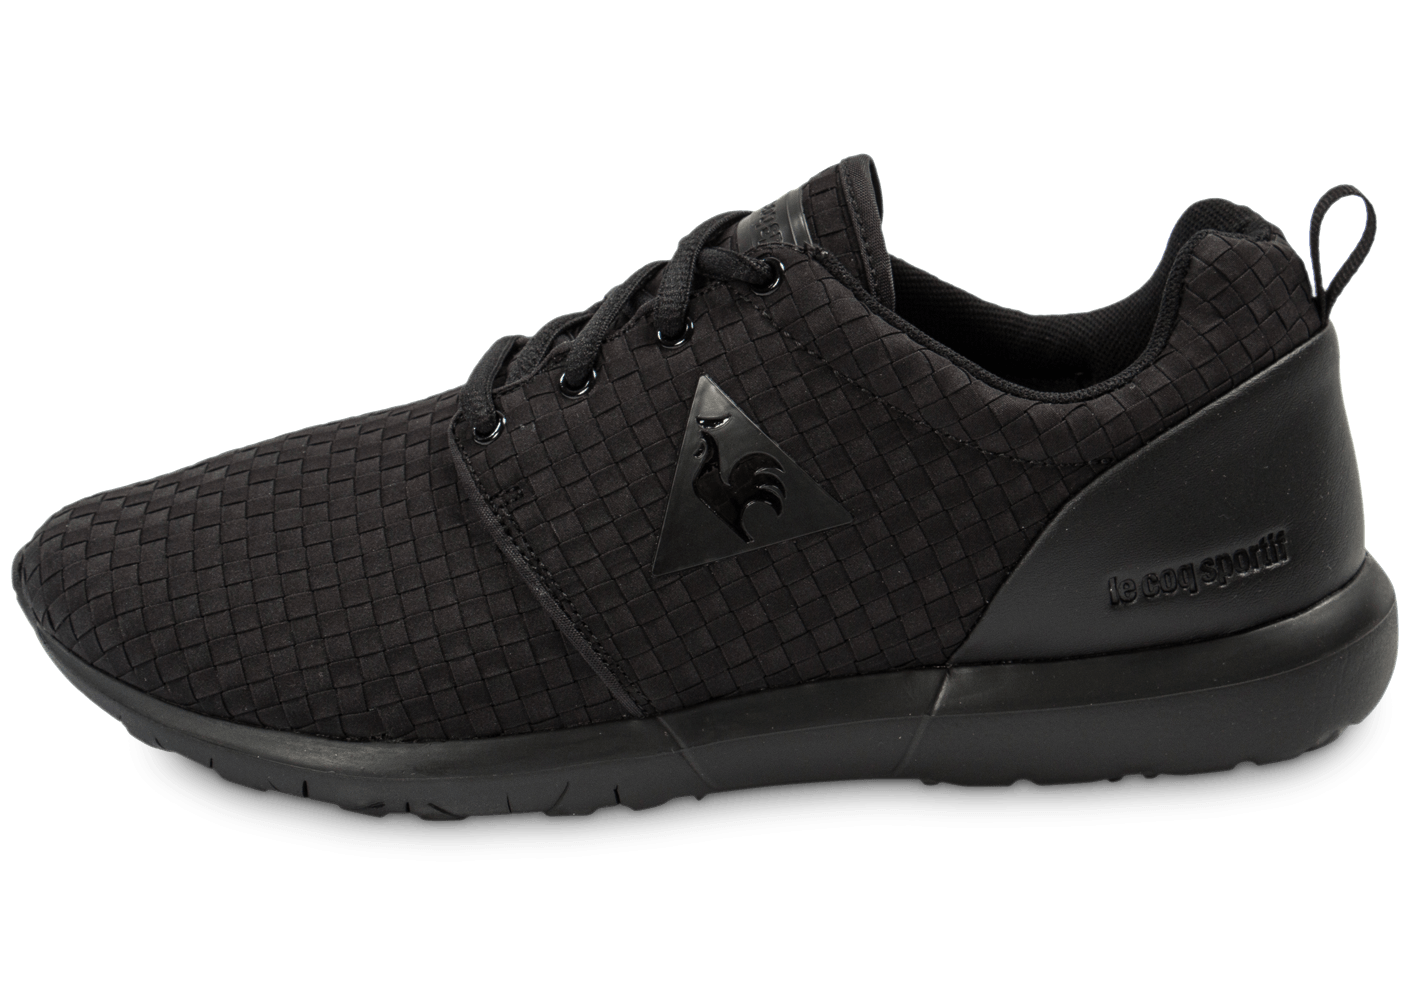 le coq sportif dynacomf woven noire chaussures homme chausport. Black Bedroom Furniture Sets. Home Design Ideas